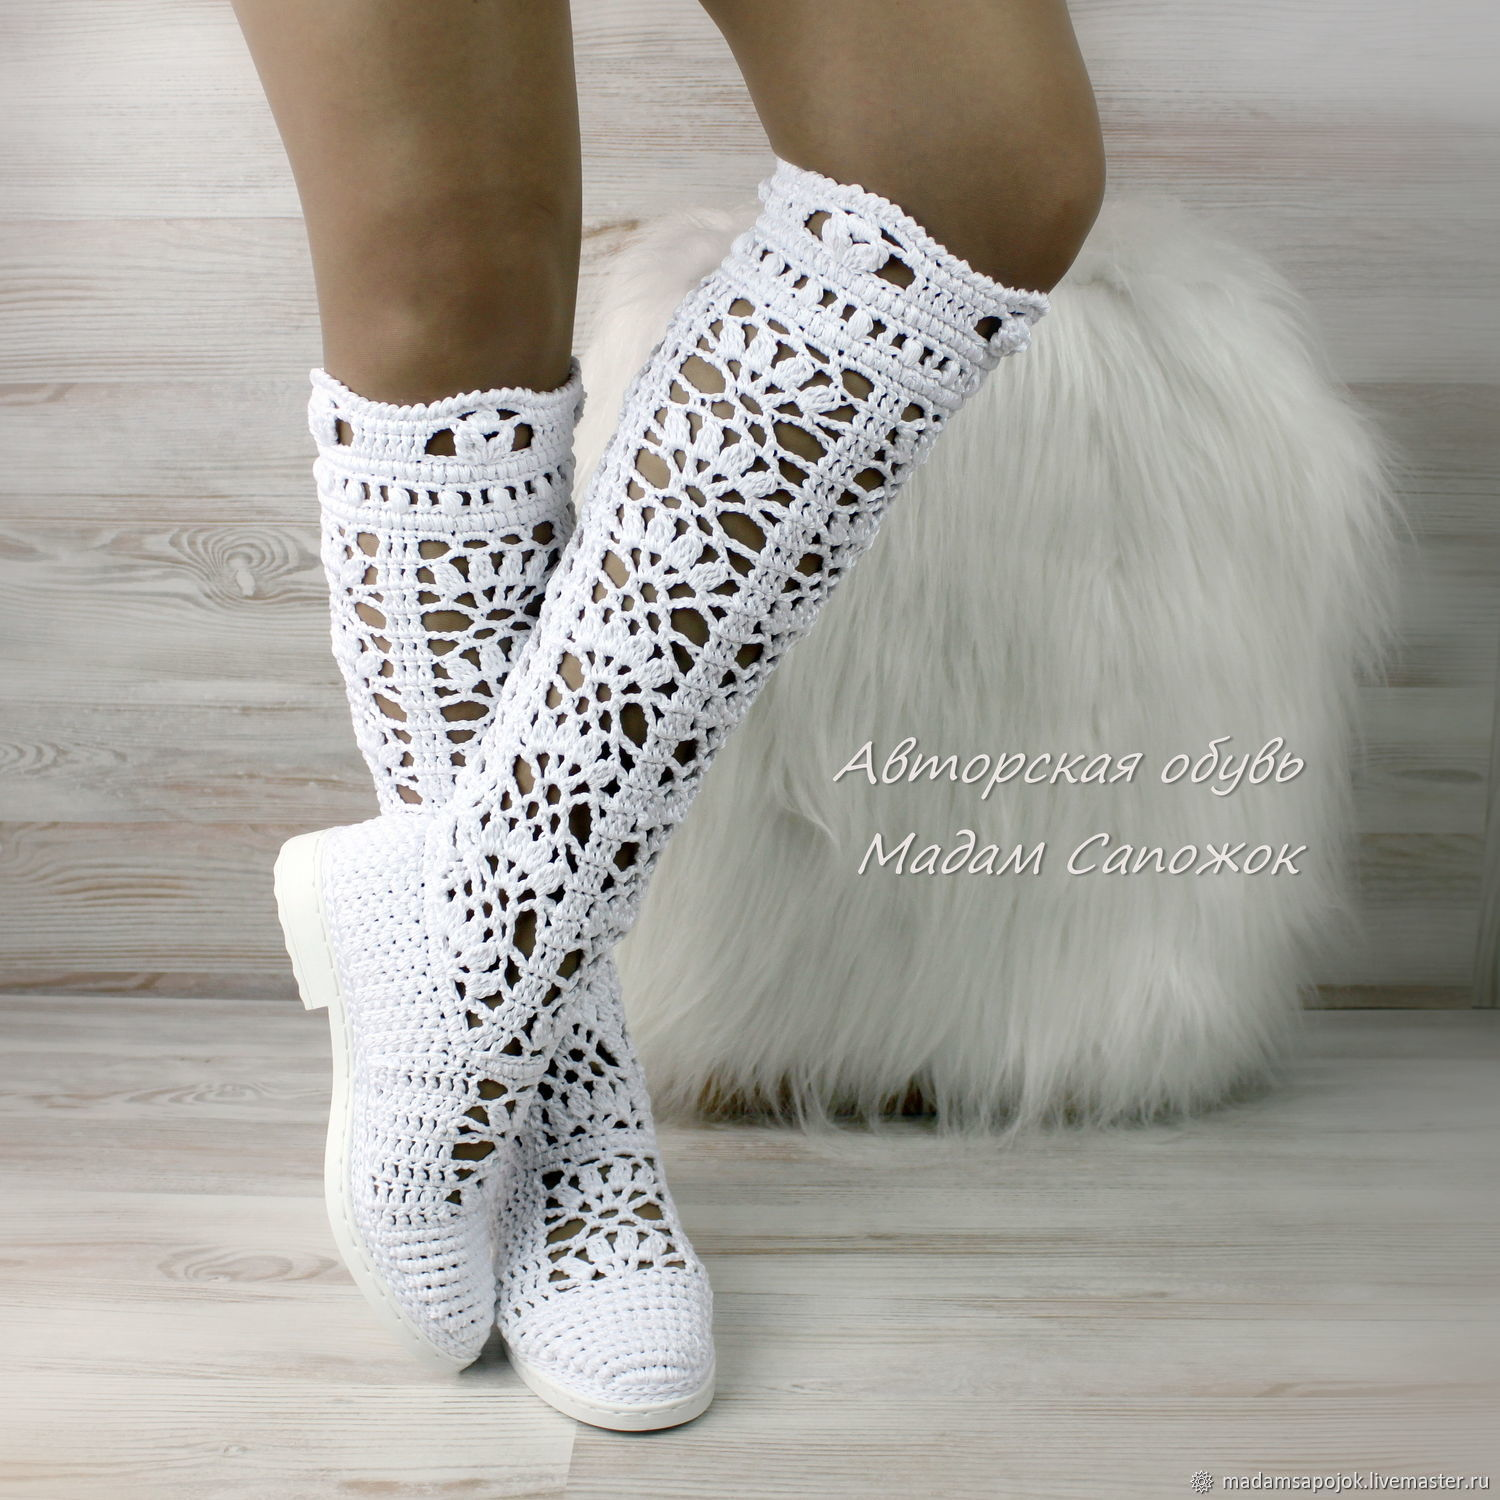 c0157ab724 My Handmade Shoes handmade. Boots-old 'First love' knitted. MadameBoots. My